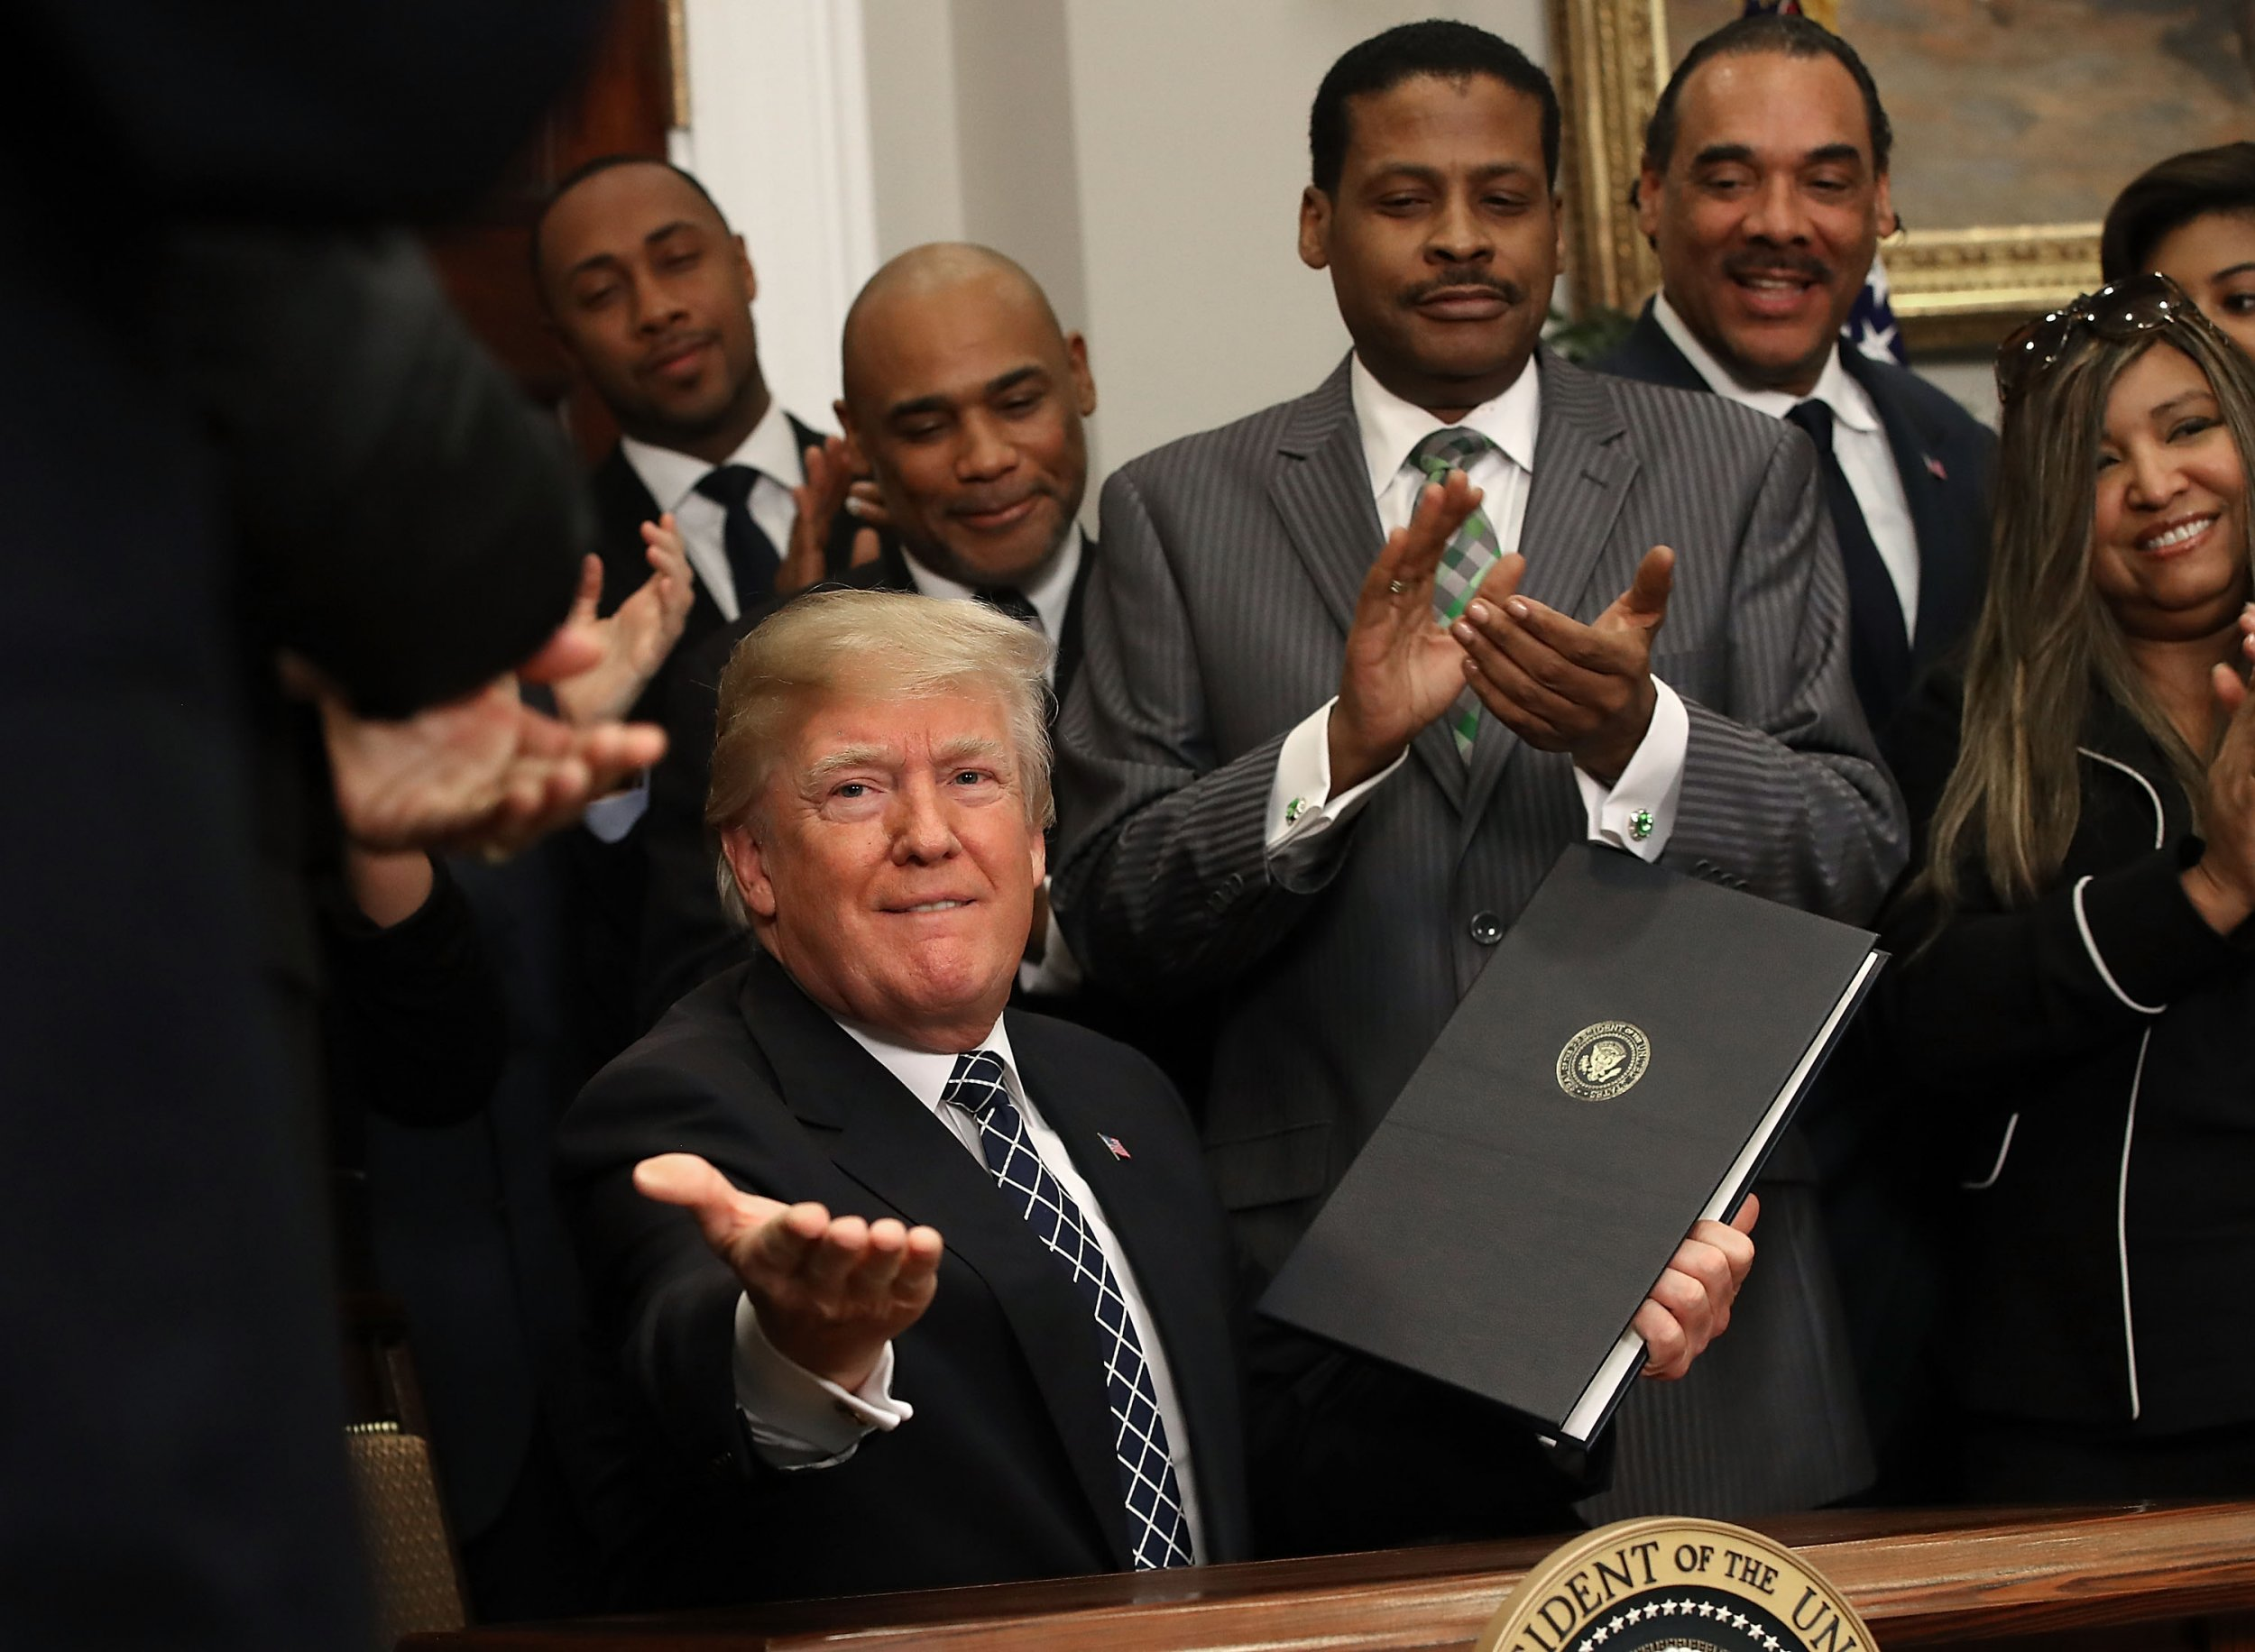 Trump Thinks Only Black People Are on Welfare, But Really